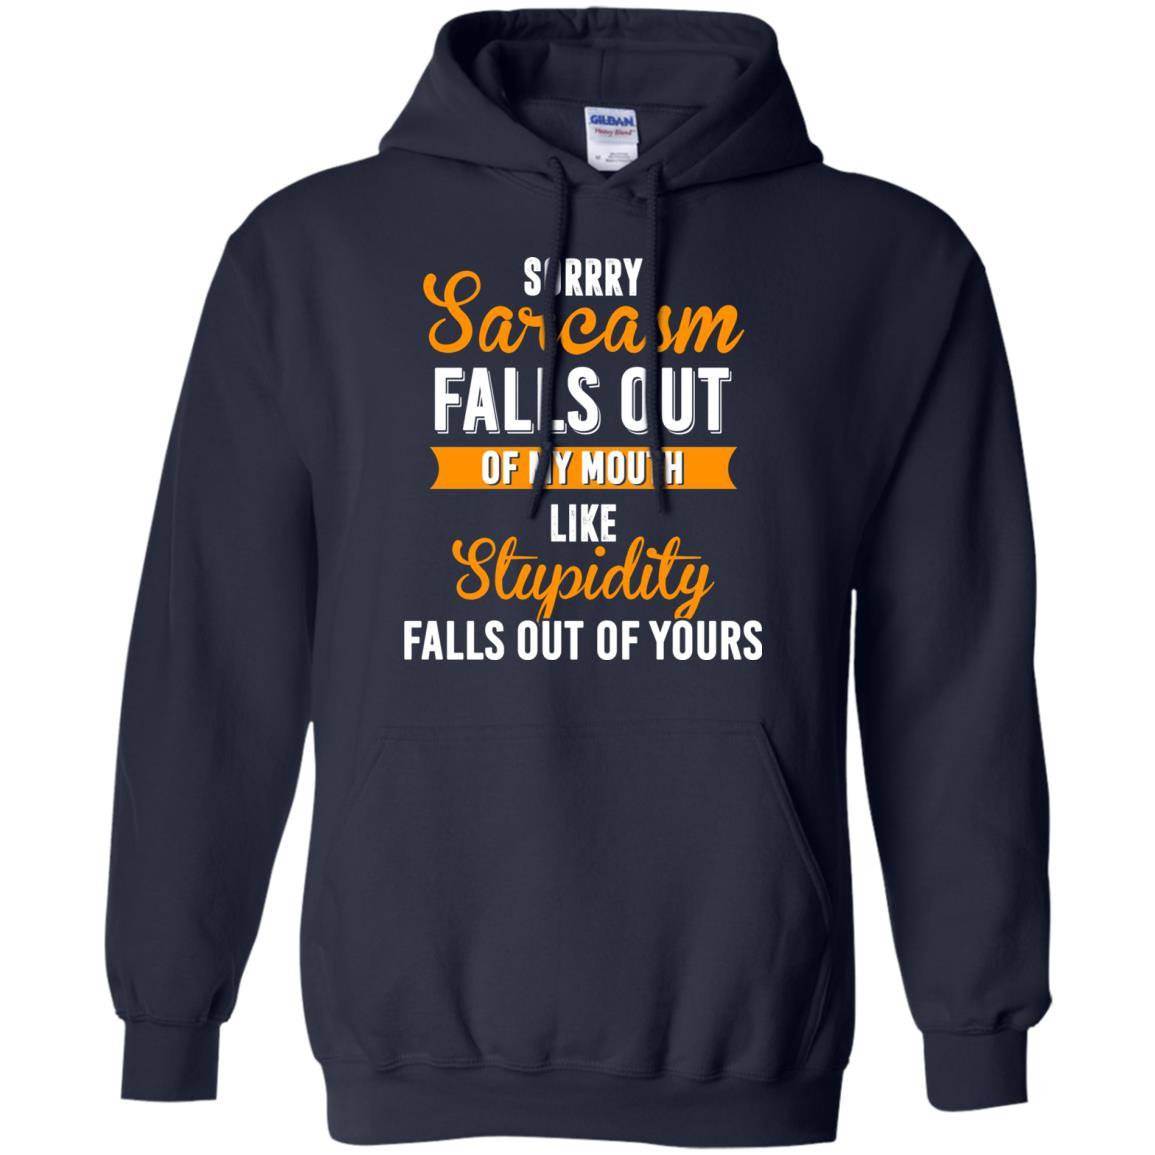 image 519px Sorry, Sarcasm Falls Out of my Mouth Like Stupidity Falls Out Of Yours Shirt, Tank